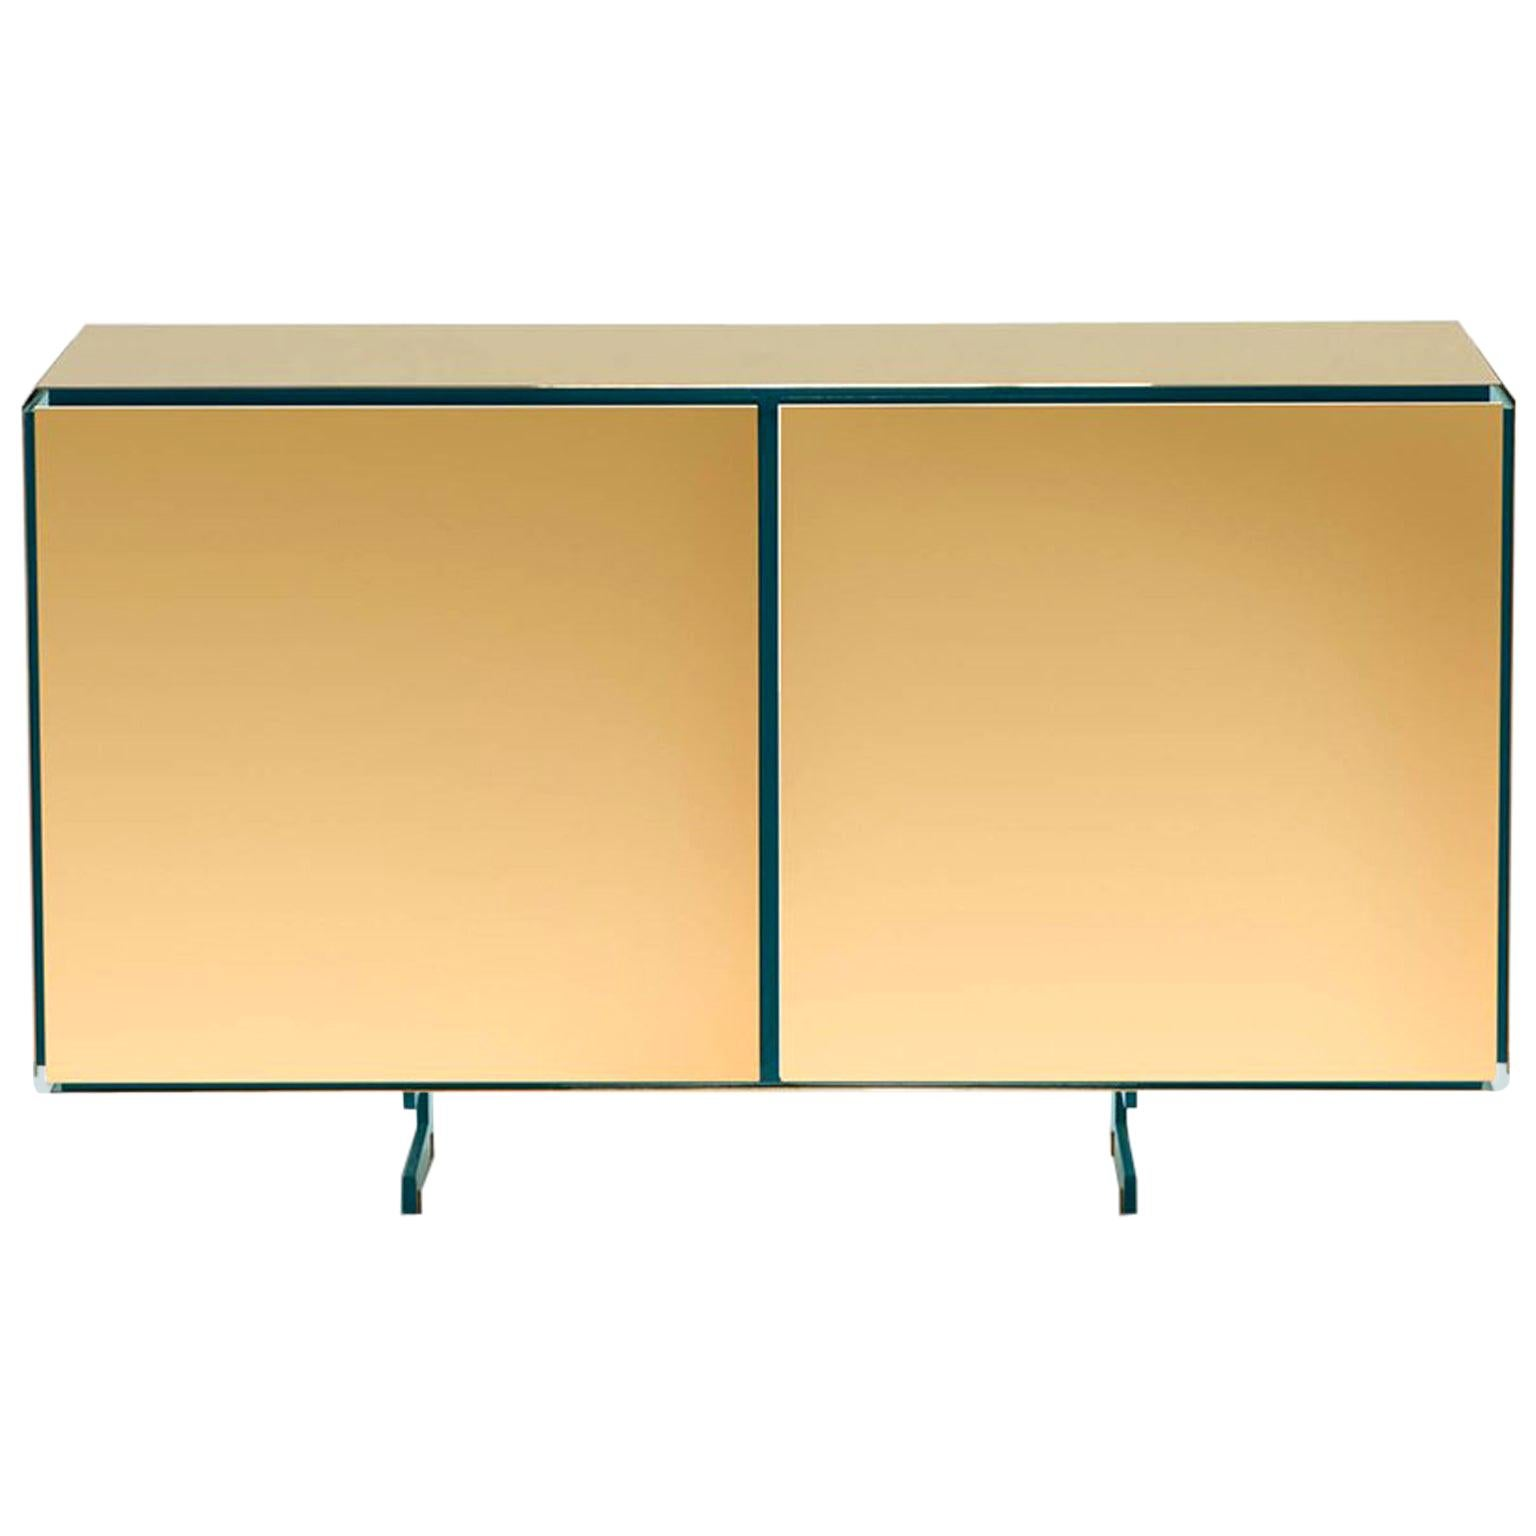 Gold Contemporary Two Doors Sideboard, 24-Karat Polished Gold-Plated